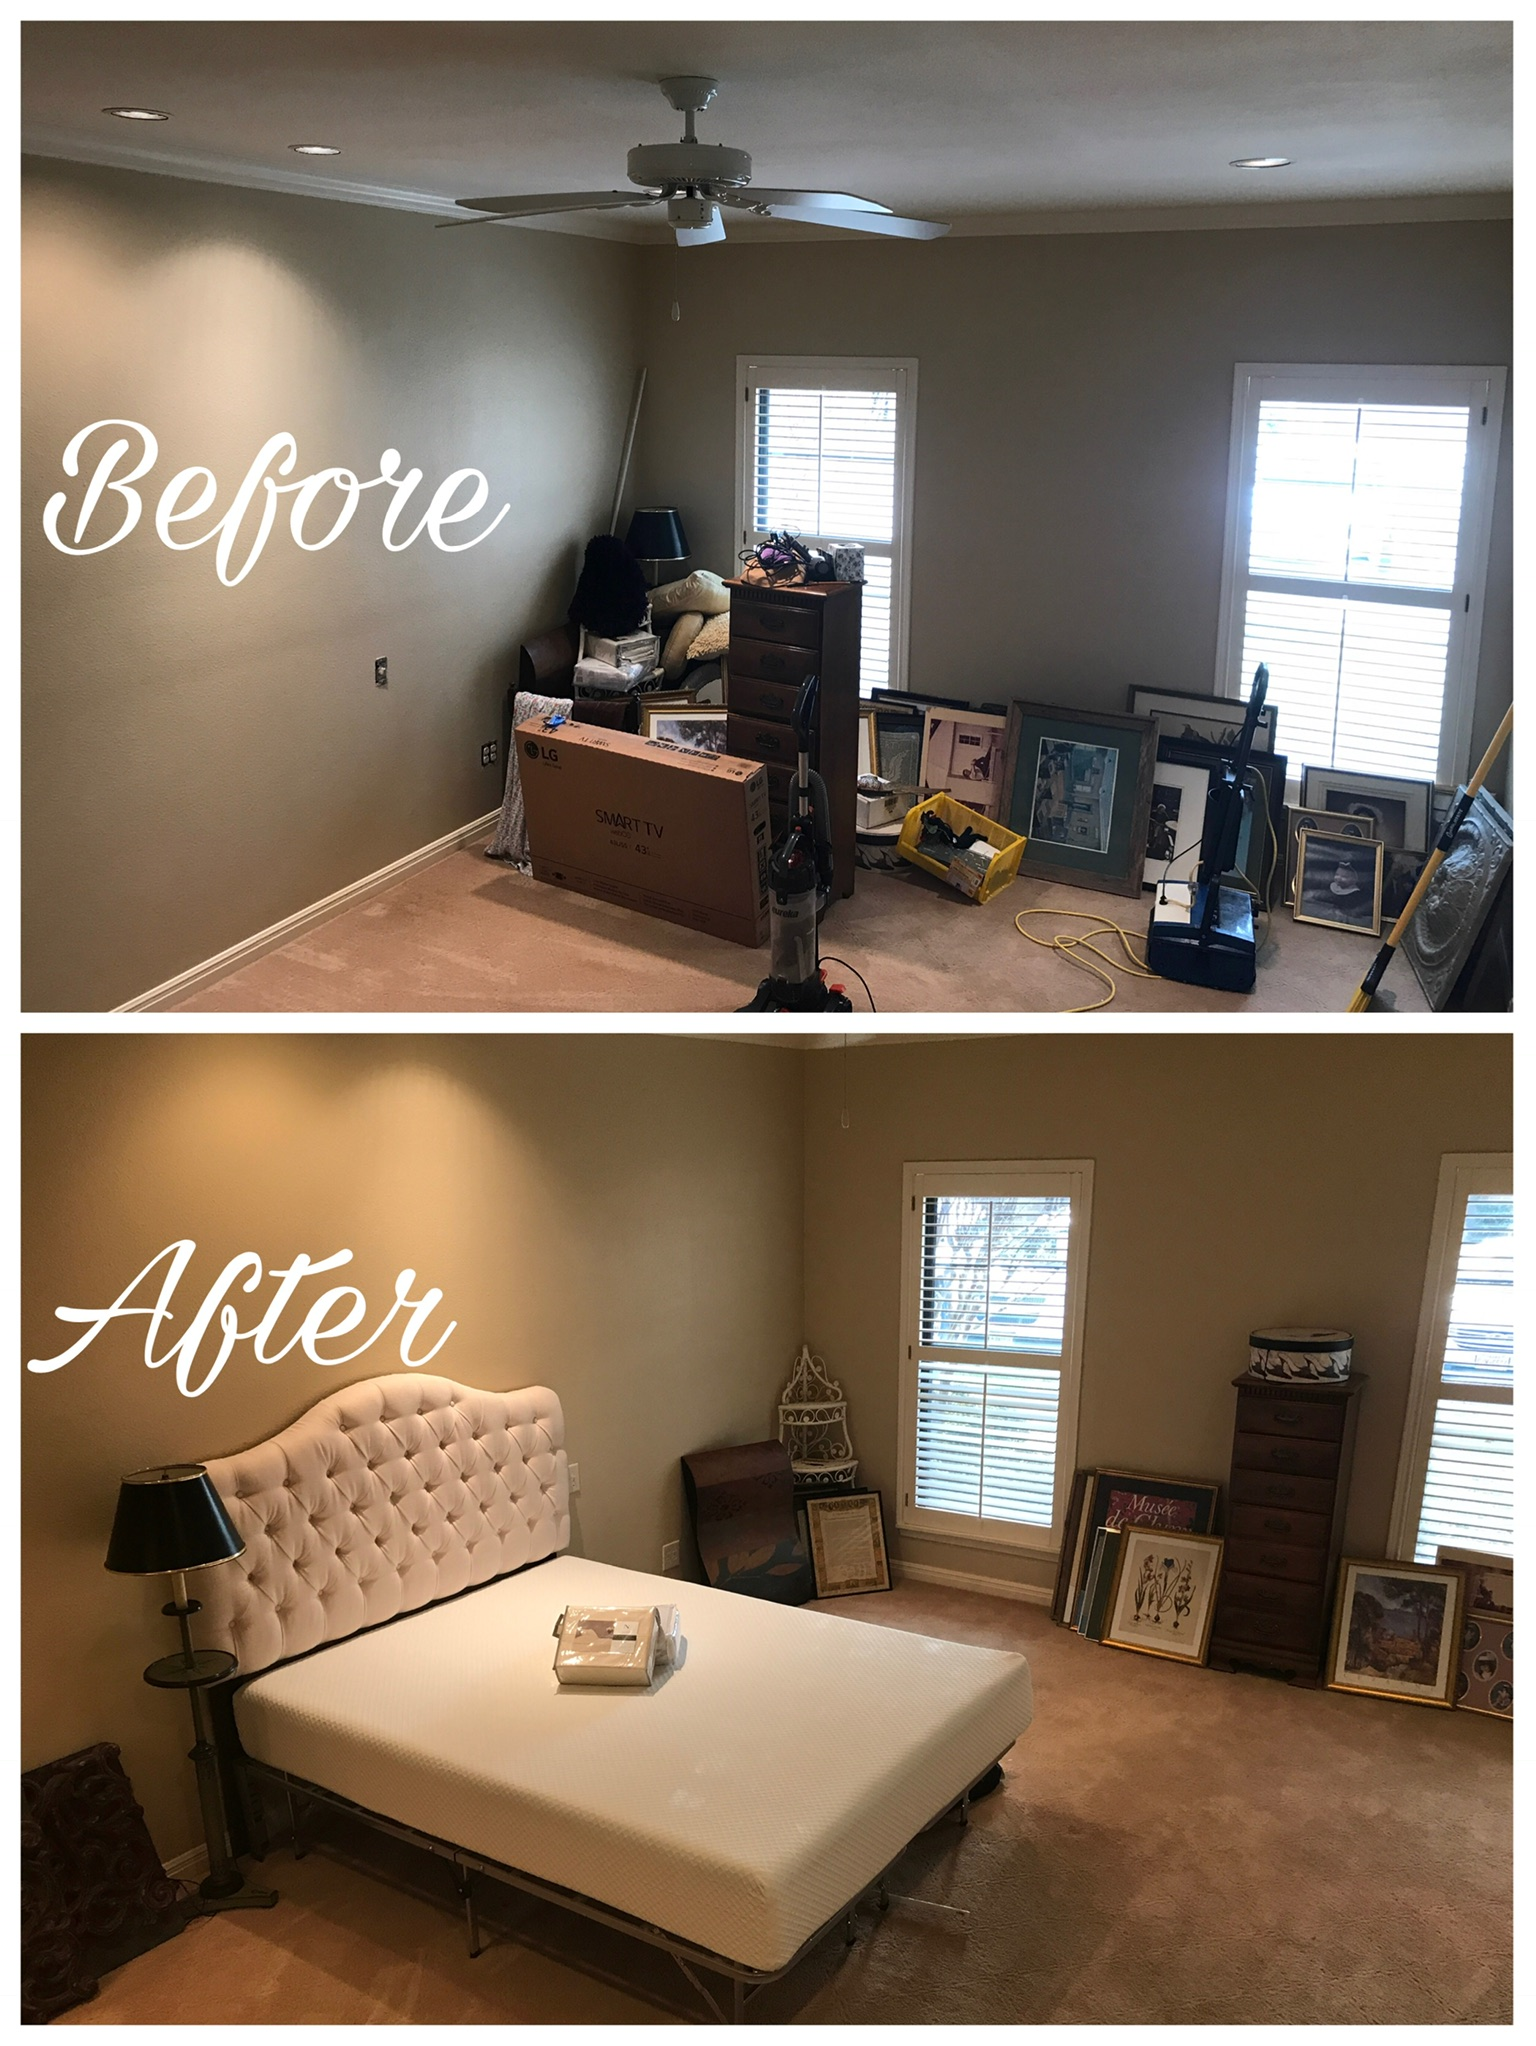 Home Repair at a Fixed Cost